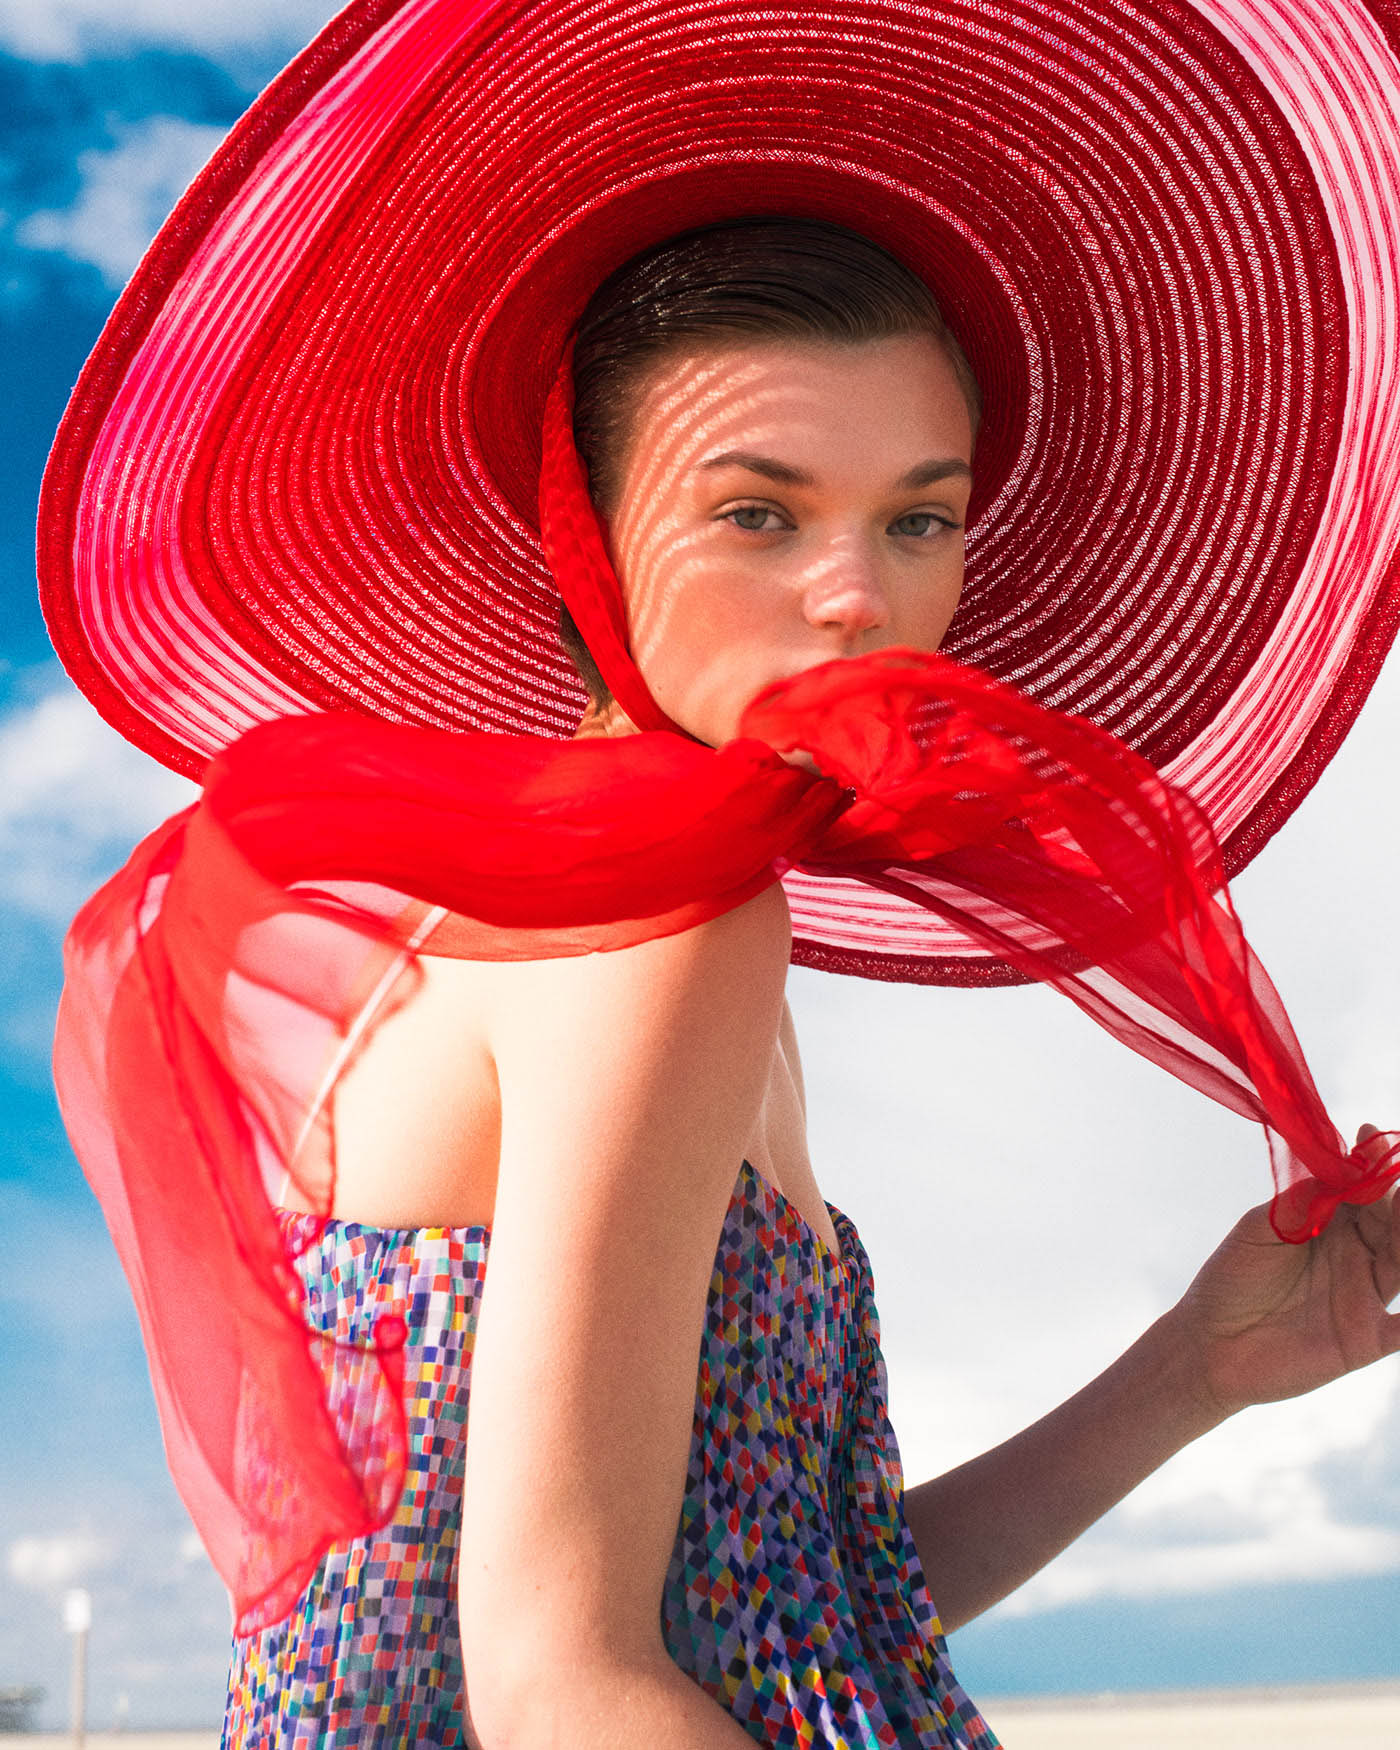 fashion photography redhat